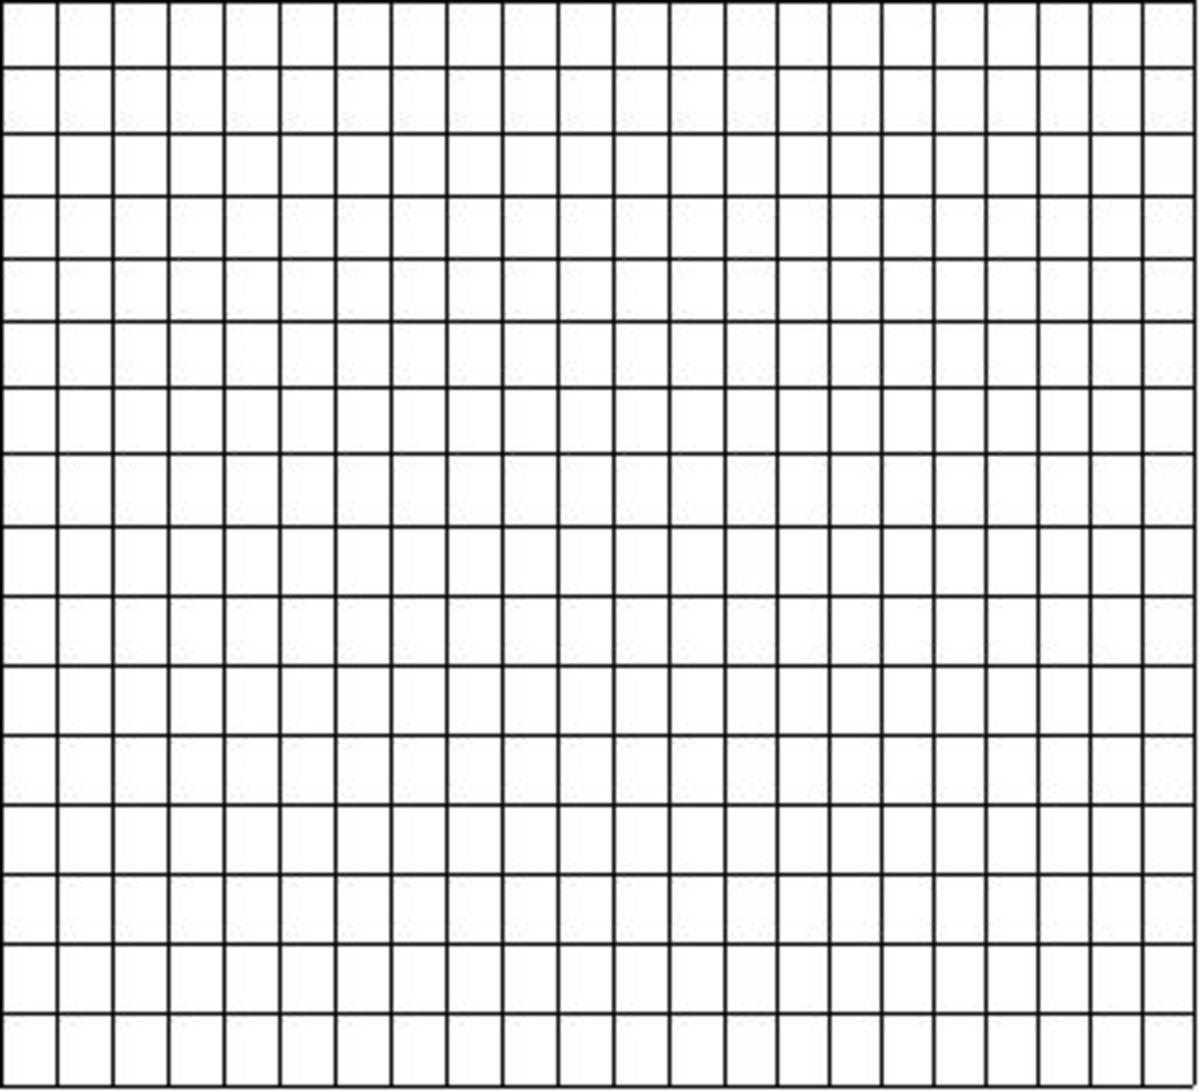 A simple grid is the start of a word search puzzle, also known as a seek and find.